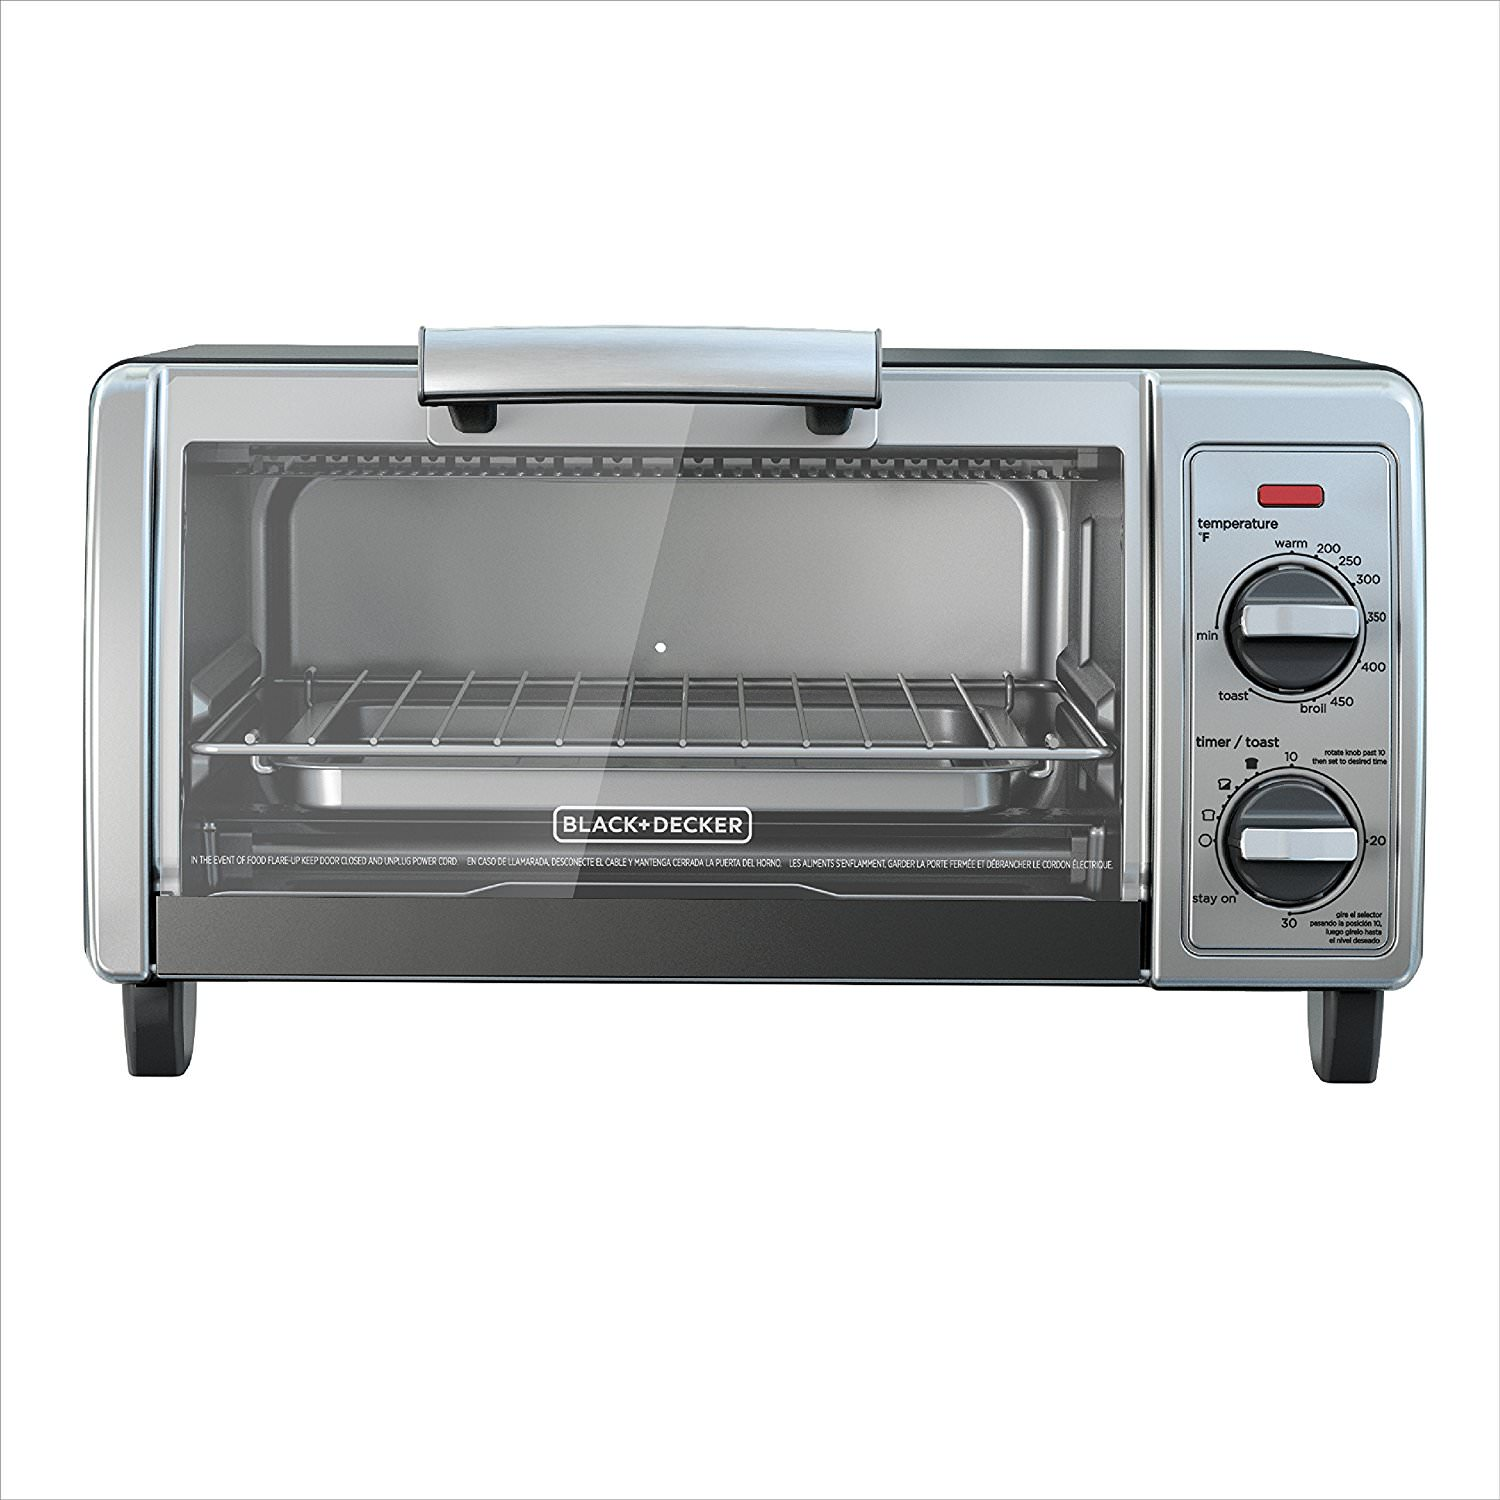 Black & Decker 4-Slice Toaster Oven, Easy Controls, Stainless Steel, TO1705SG by Spectrum Brands